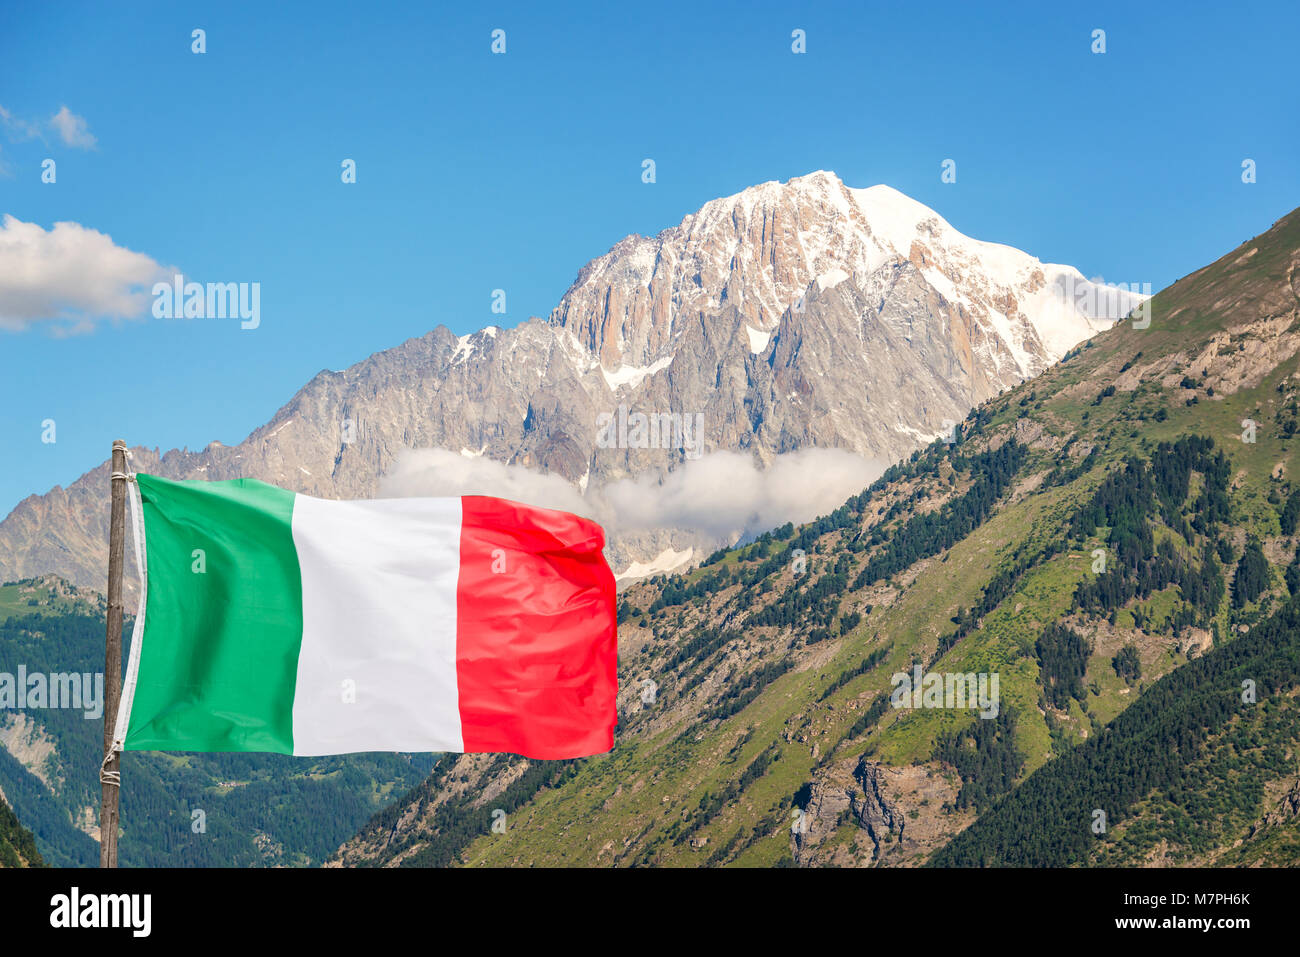 Italian flag, Monte Bianco (Mont Blanc) in the background view from Aosta Valley, Italy - Stock Image